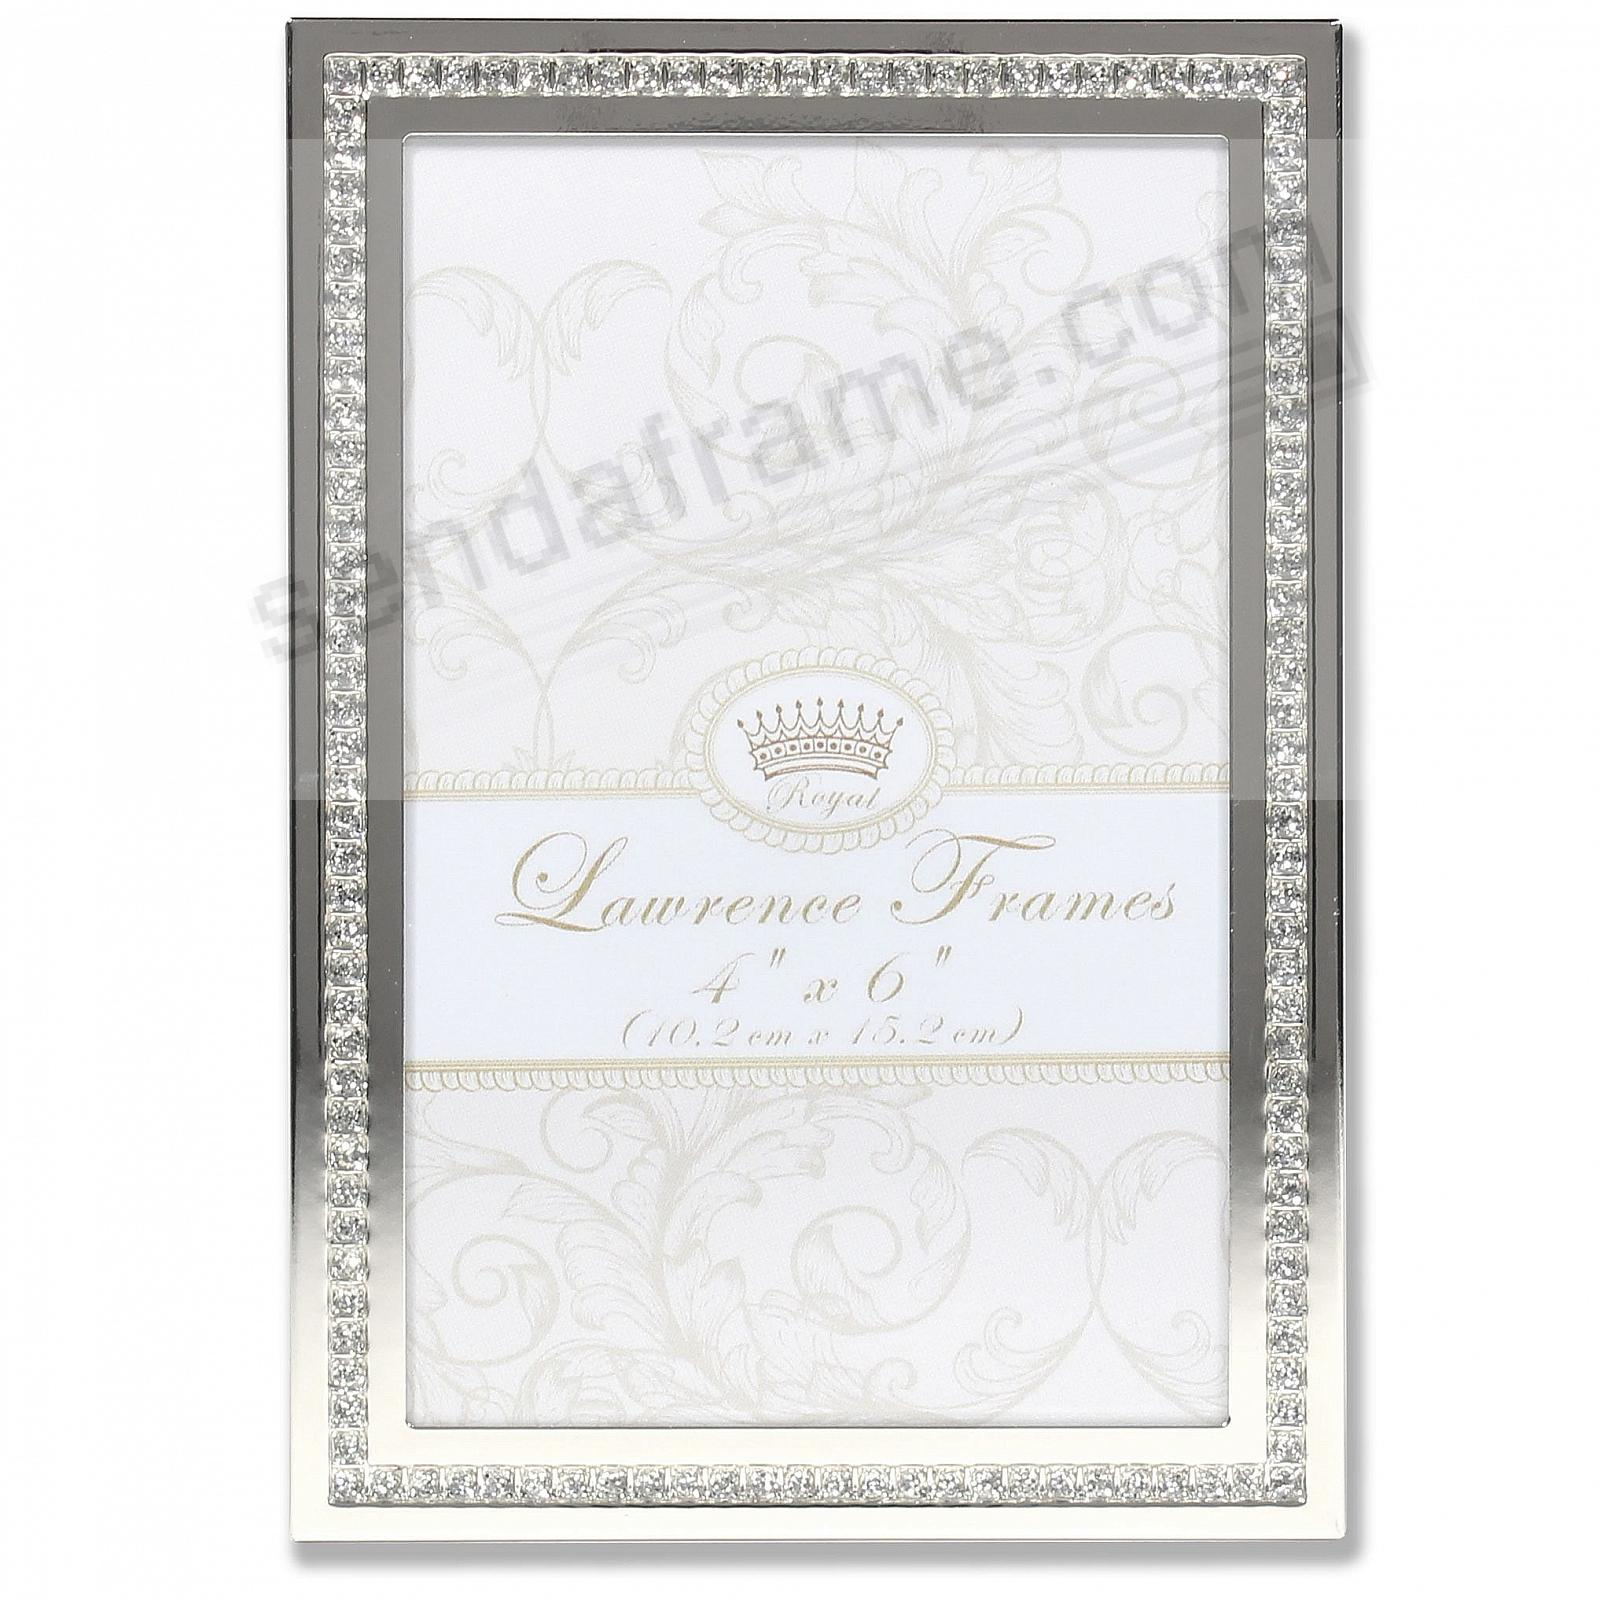 WHITE JEWELS SILVER/Crystal frame